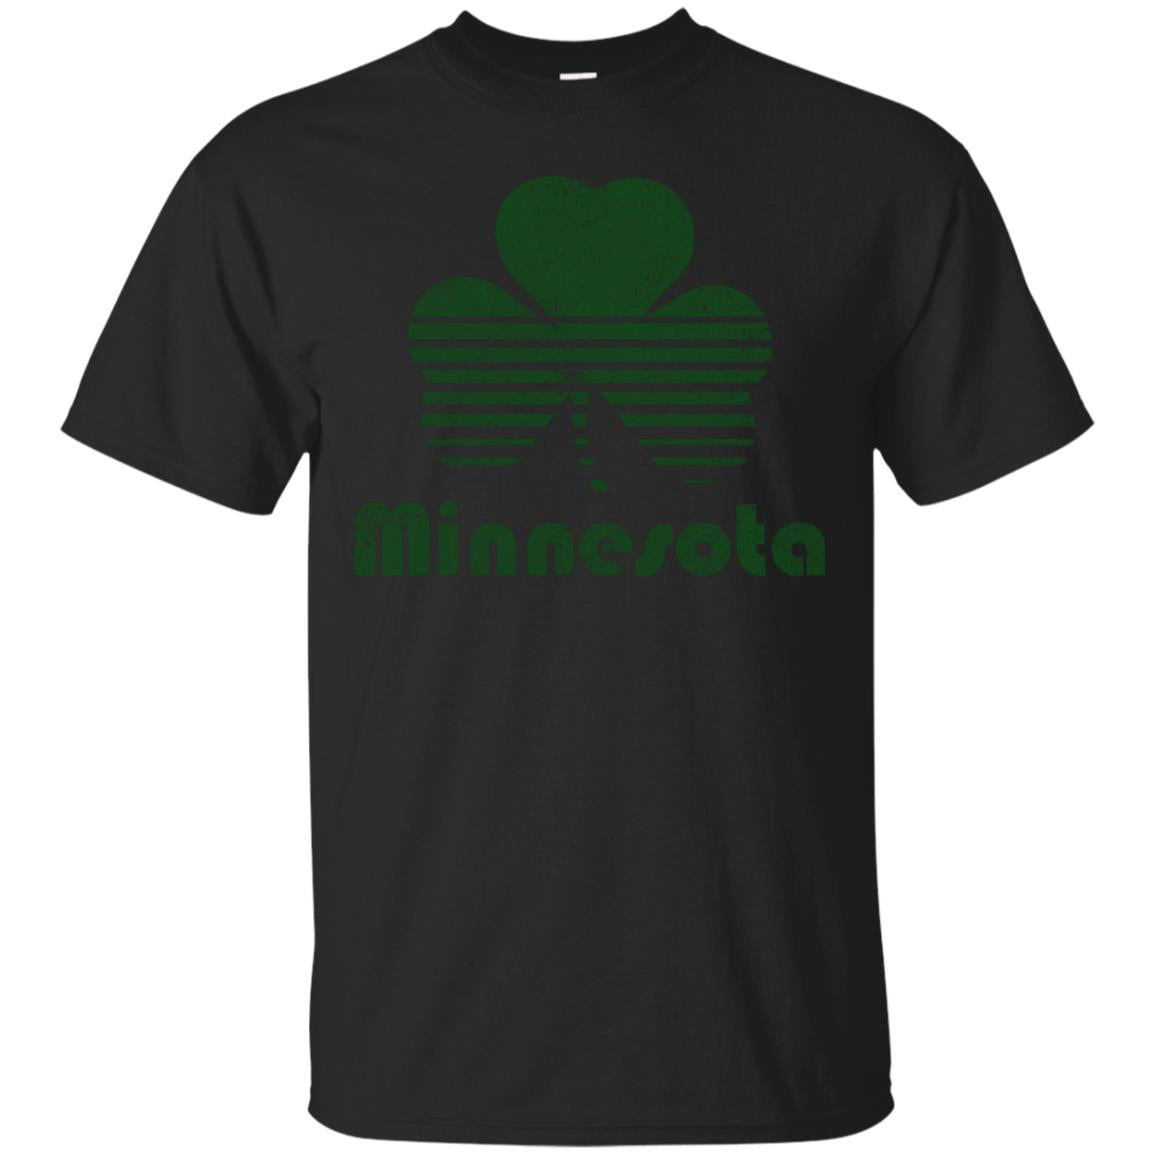 Minnesota St Patricks Day Retro T-Shirt 99promocode